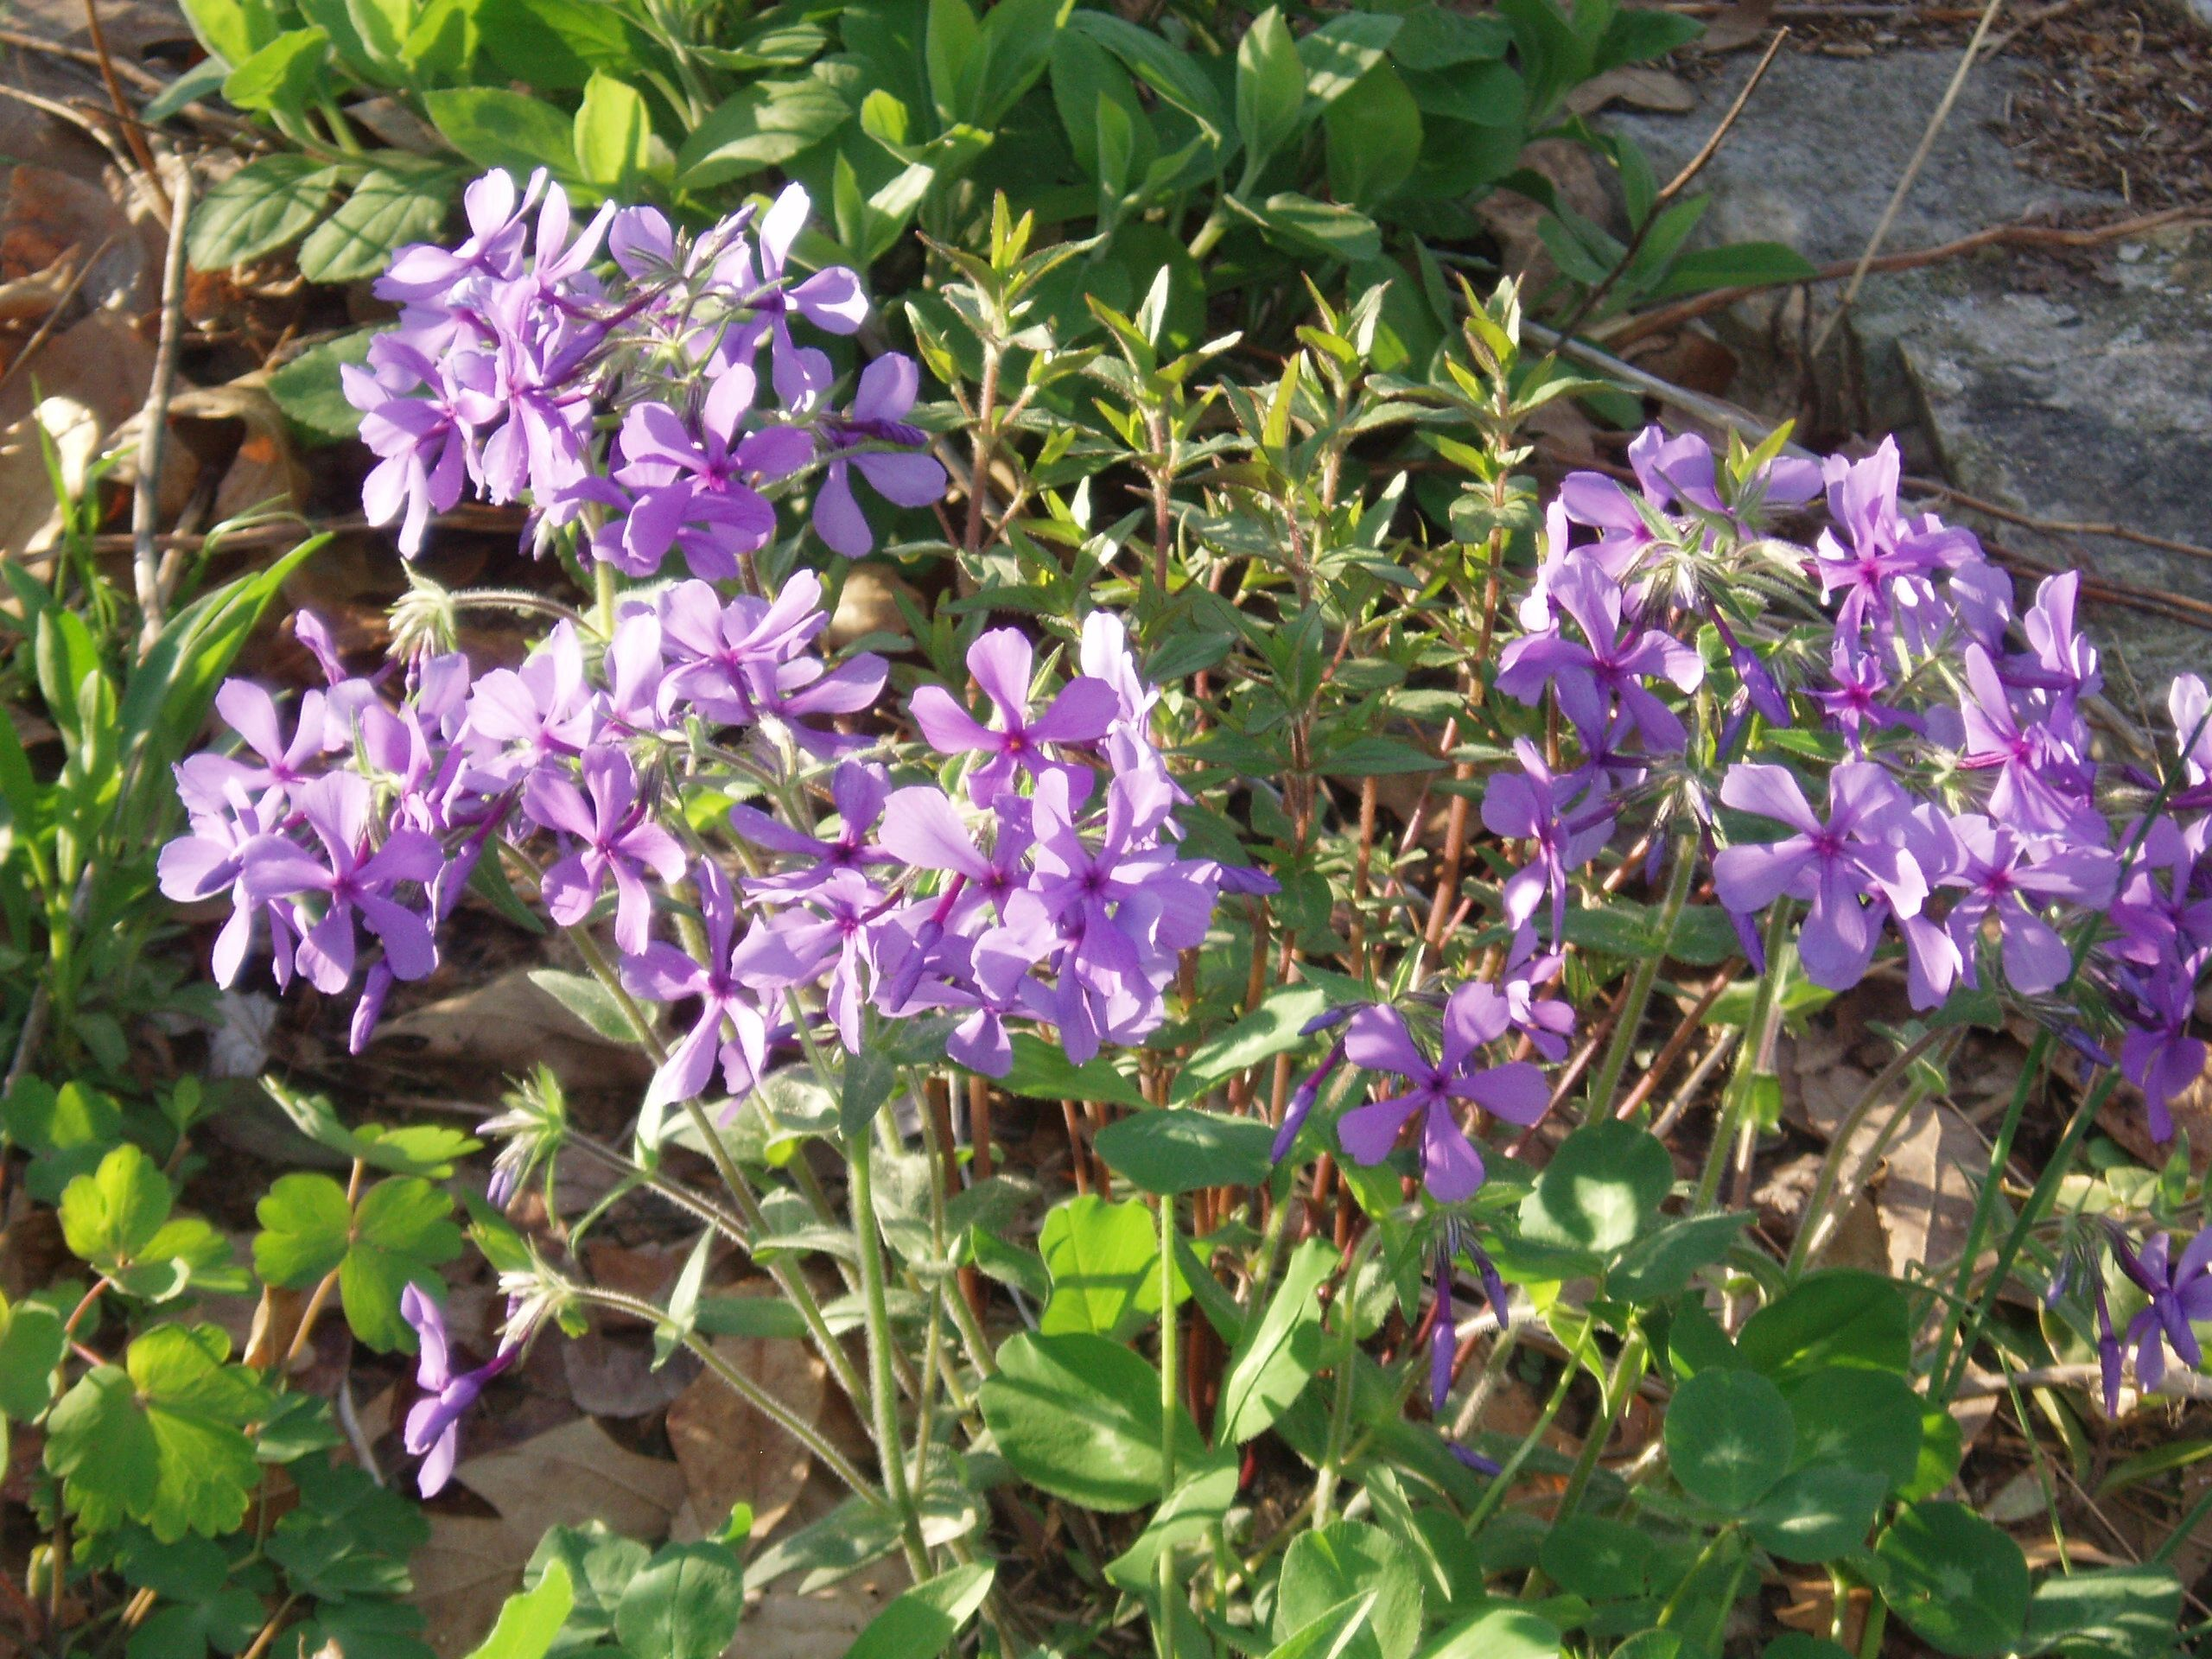 "{""blocks"":[{""key"":""4grur"",""text"":""Phlox divaricata Lapham's Woodland Phlox, Wild Sweet William - potted plants email john@easywildflowers.com  "",""type"":""unstyled"",""depth"":0,""inlineStyleRanges"":[],""entityRanges"":[],""data"":{}}],""entityMap"":{}}"